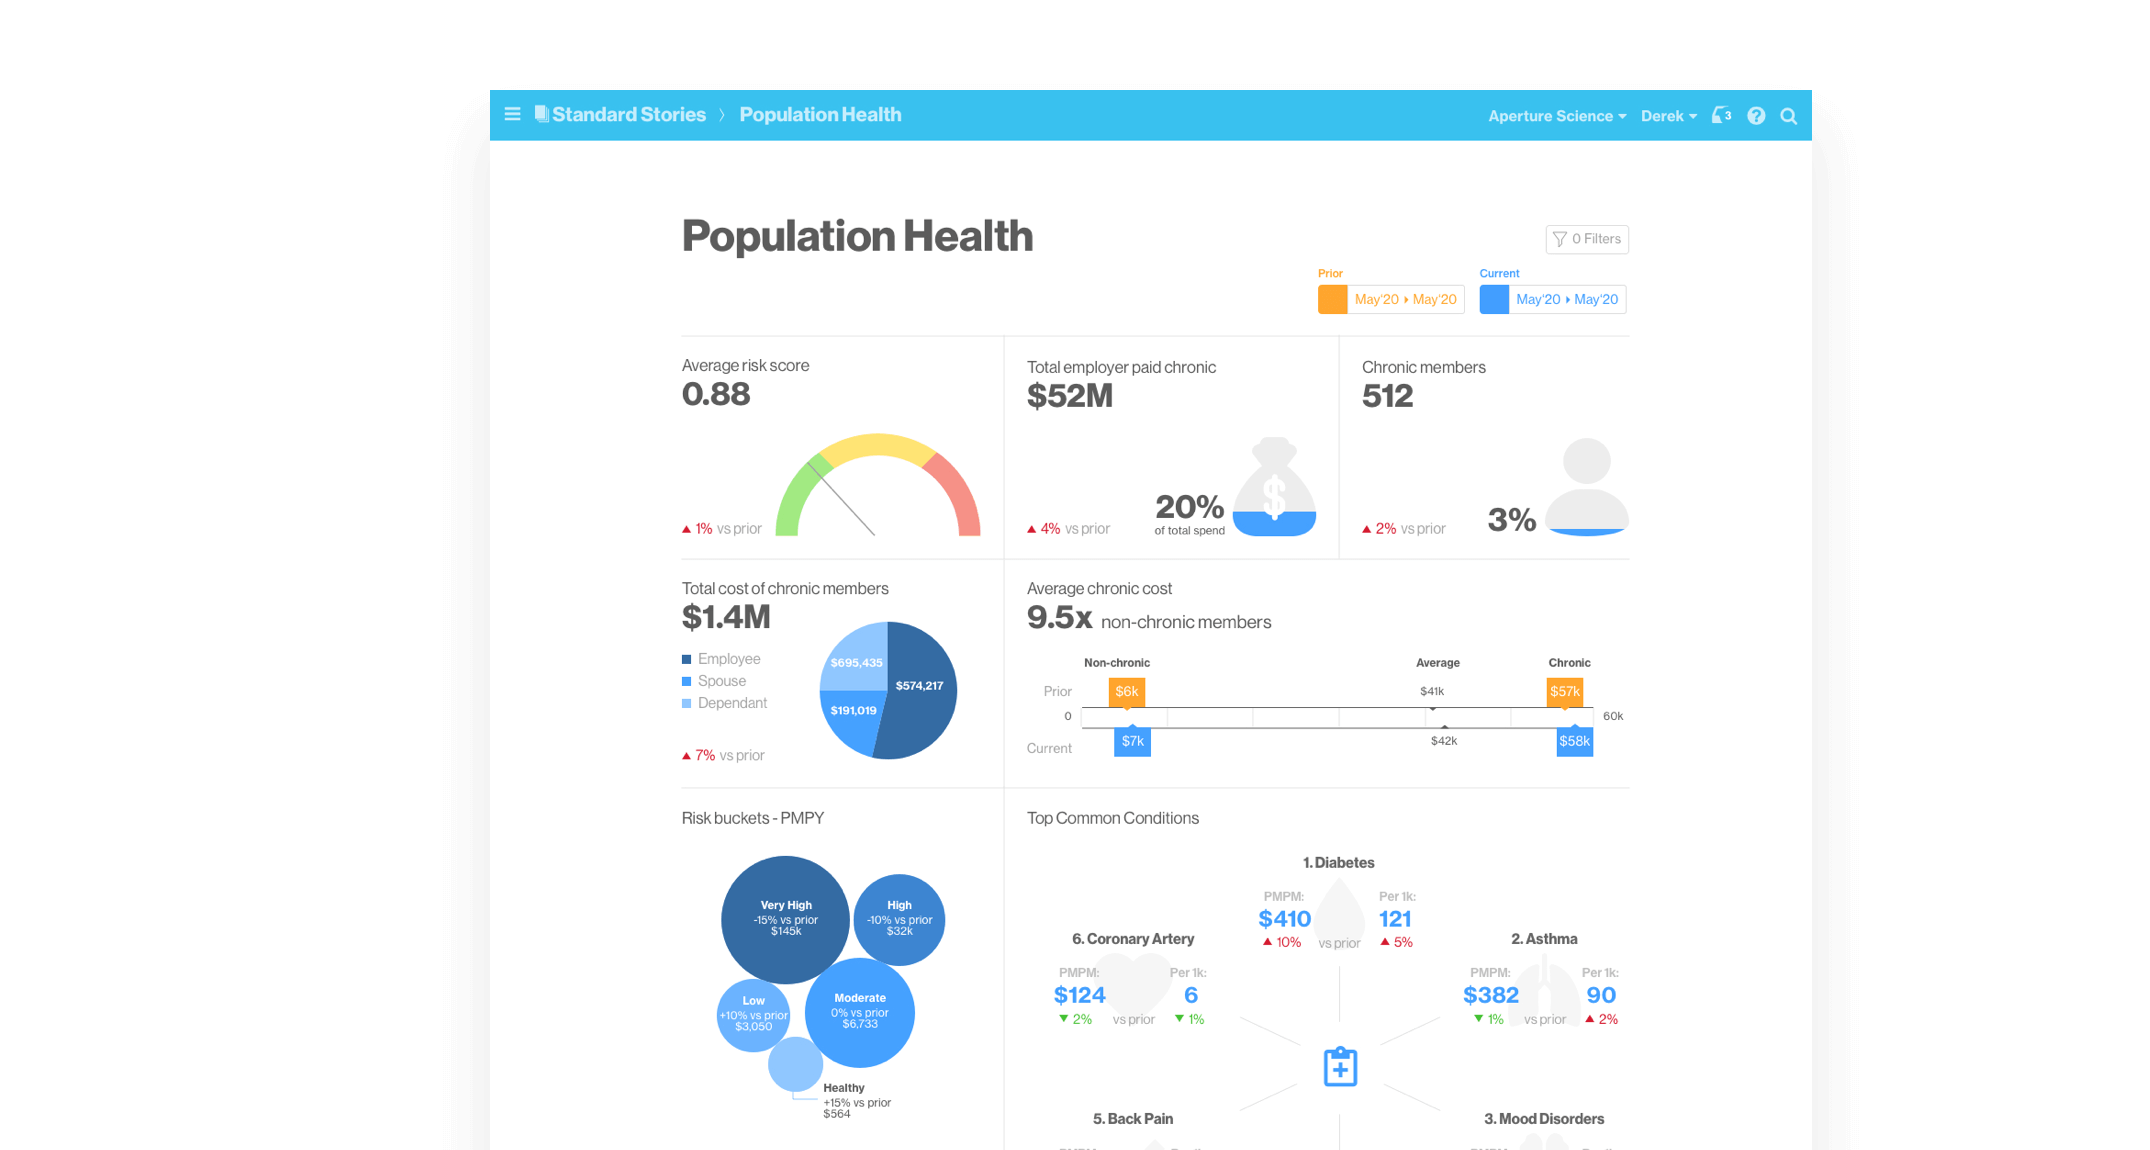 Artemis Platform screenshot of the Population Health Standard Story.